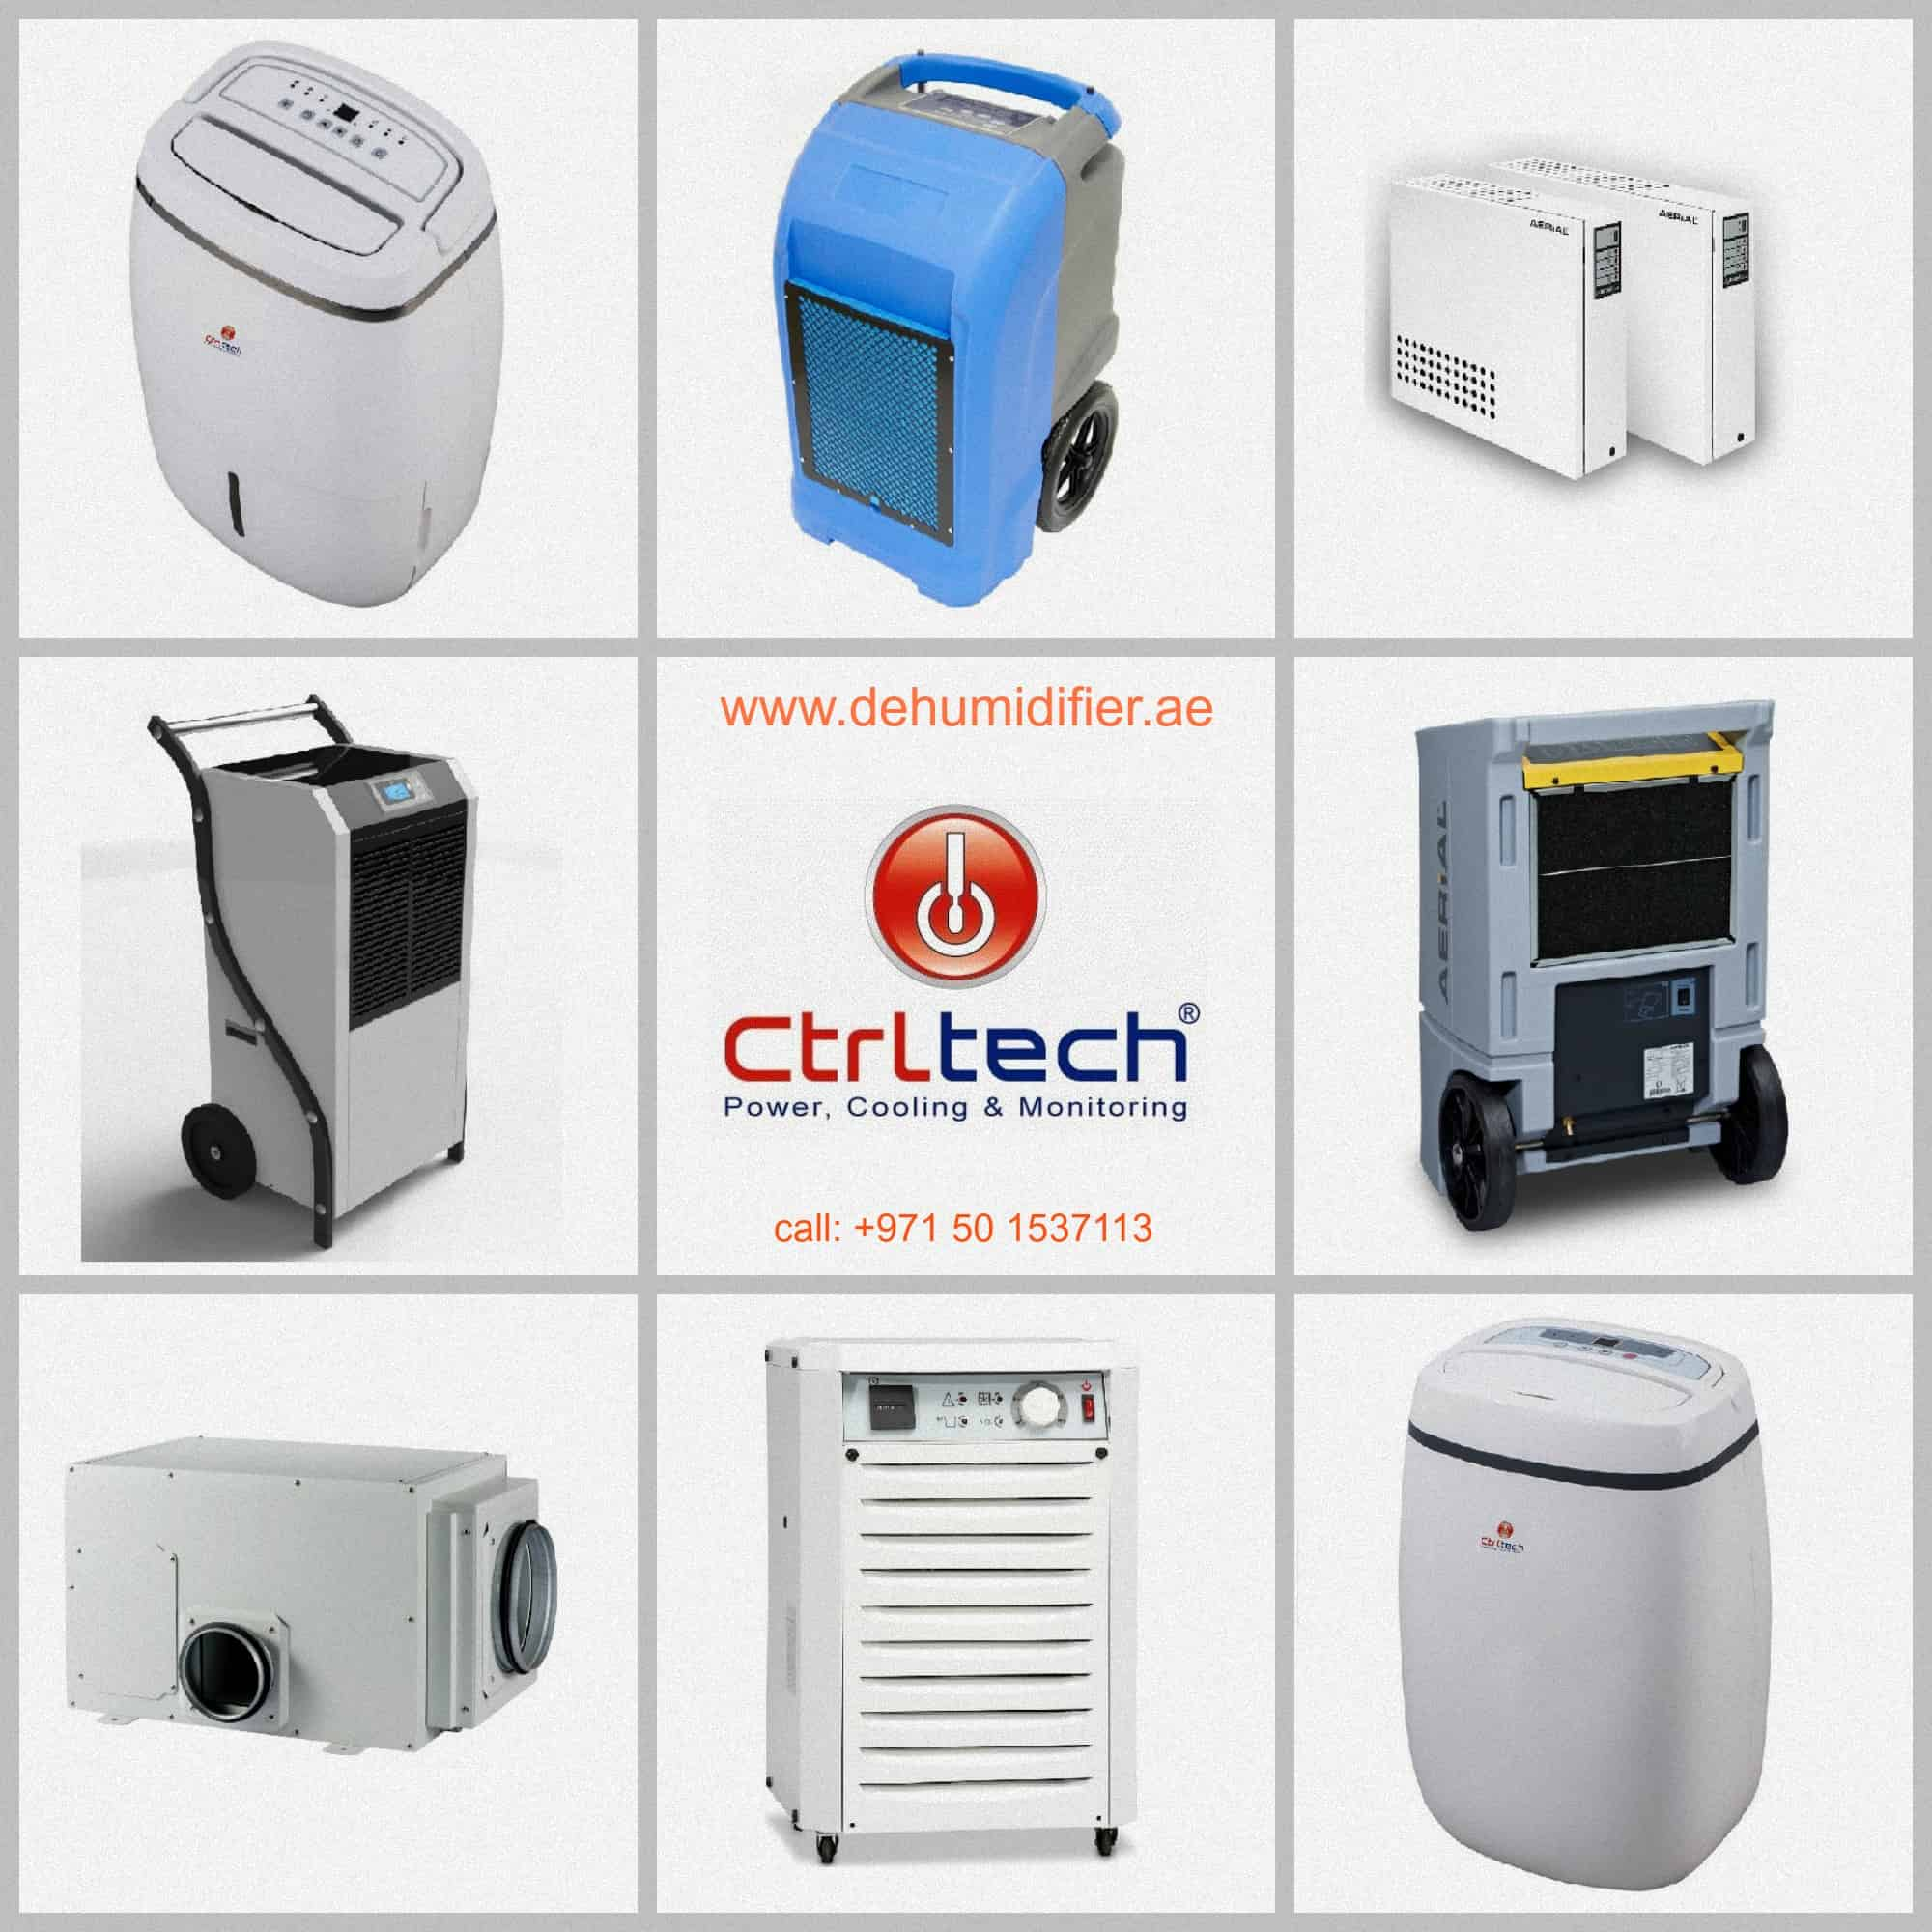 all model of poratable dehumidifier and industrial dehumidifier for humidity control.